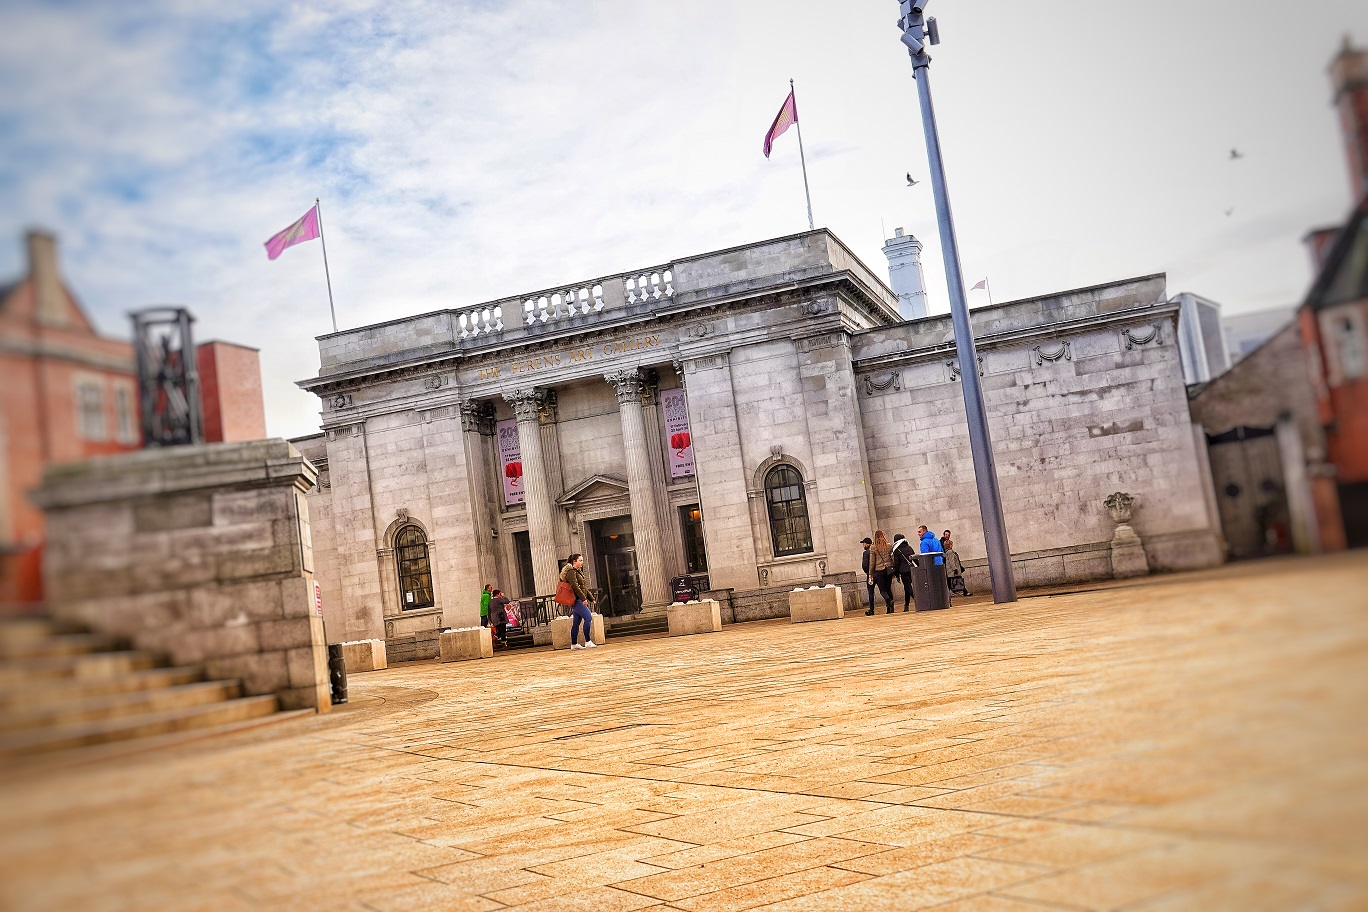 A community feedback day took place at Ferens Art Gallery.